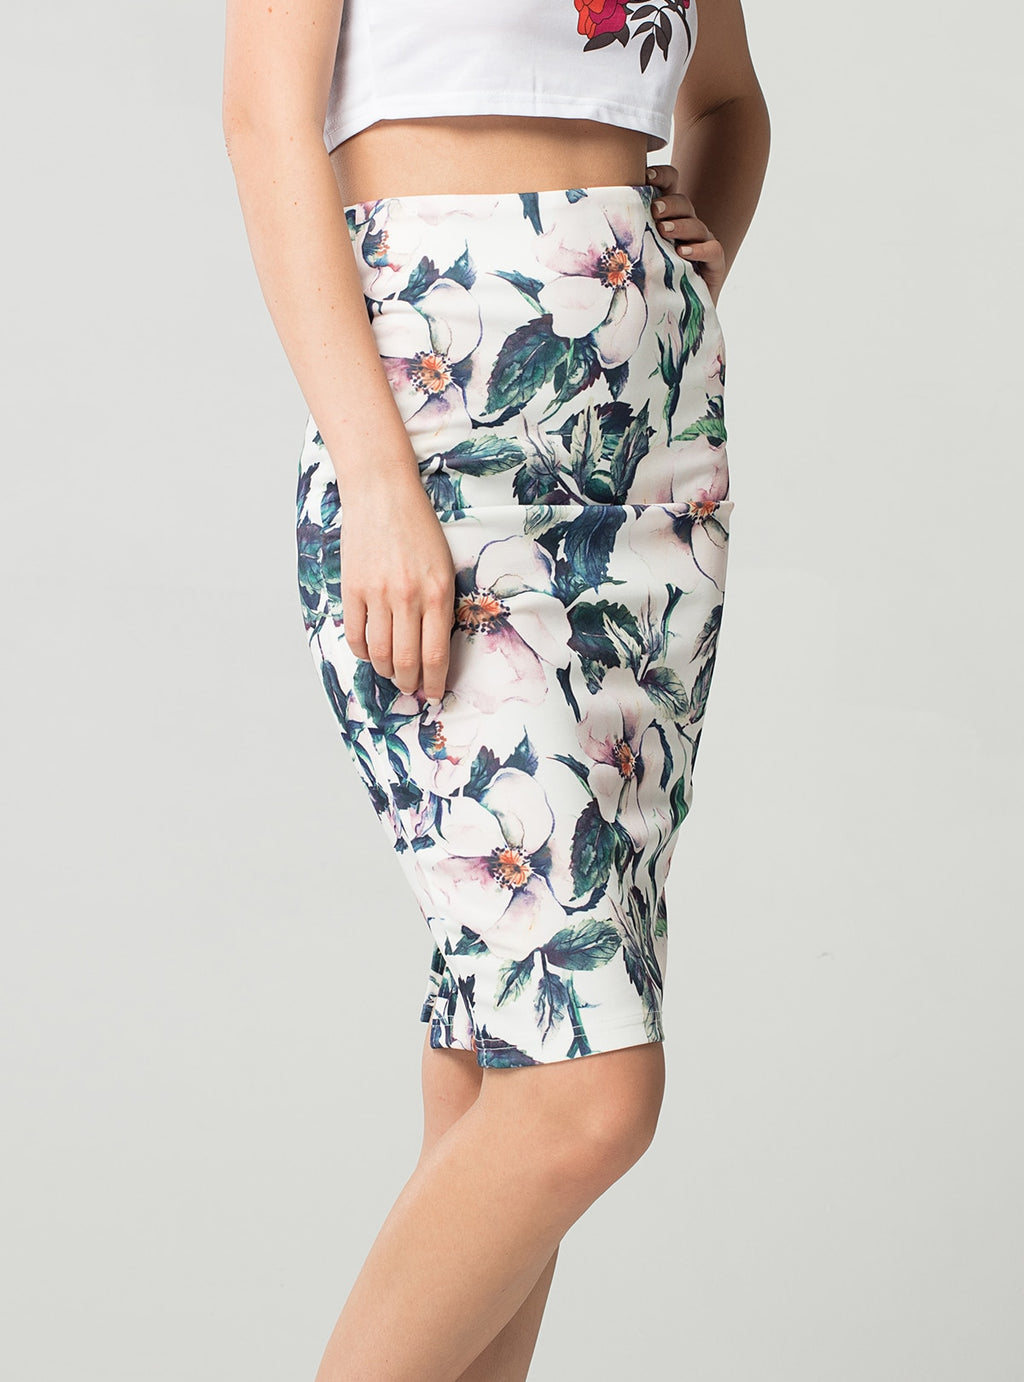 Lara Pencil Skirt in White & Purple Floral